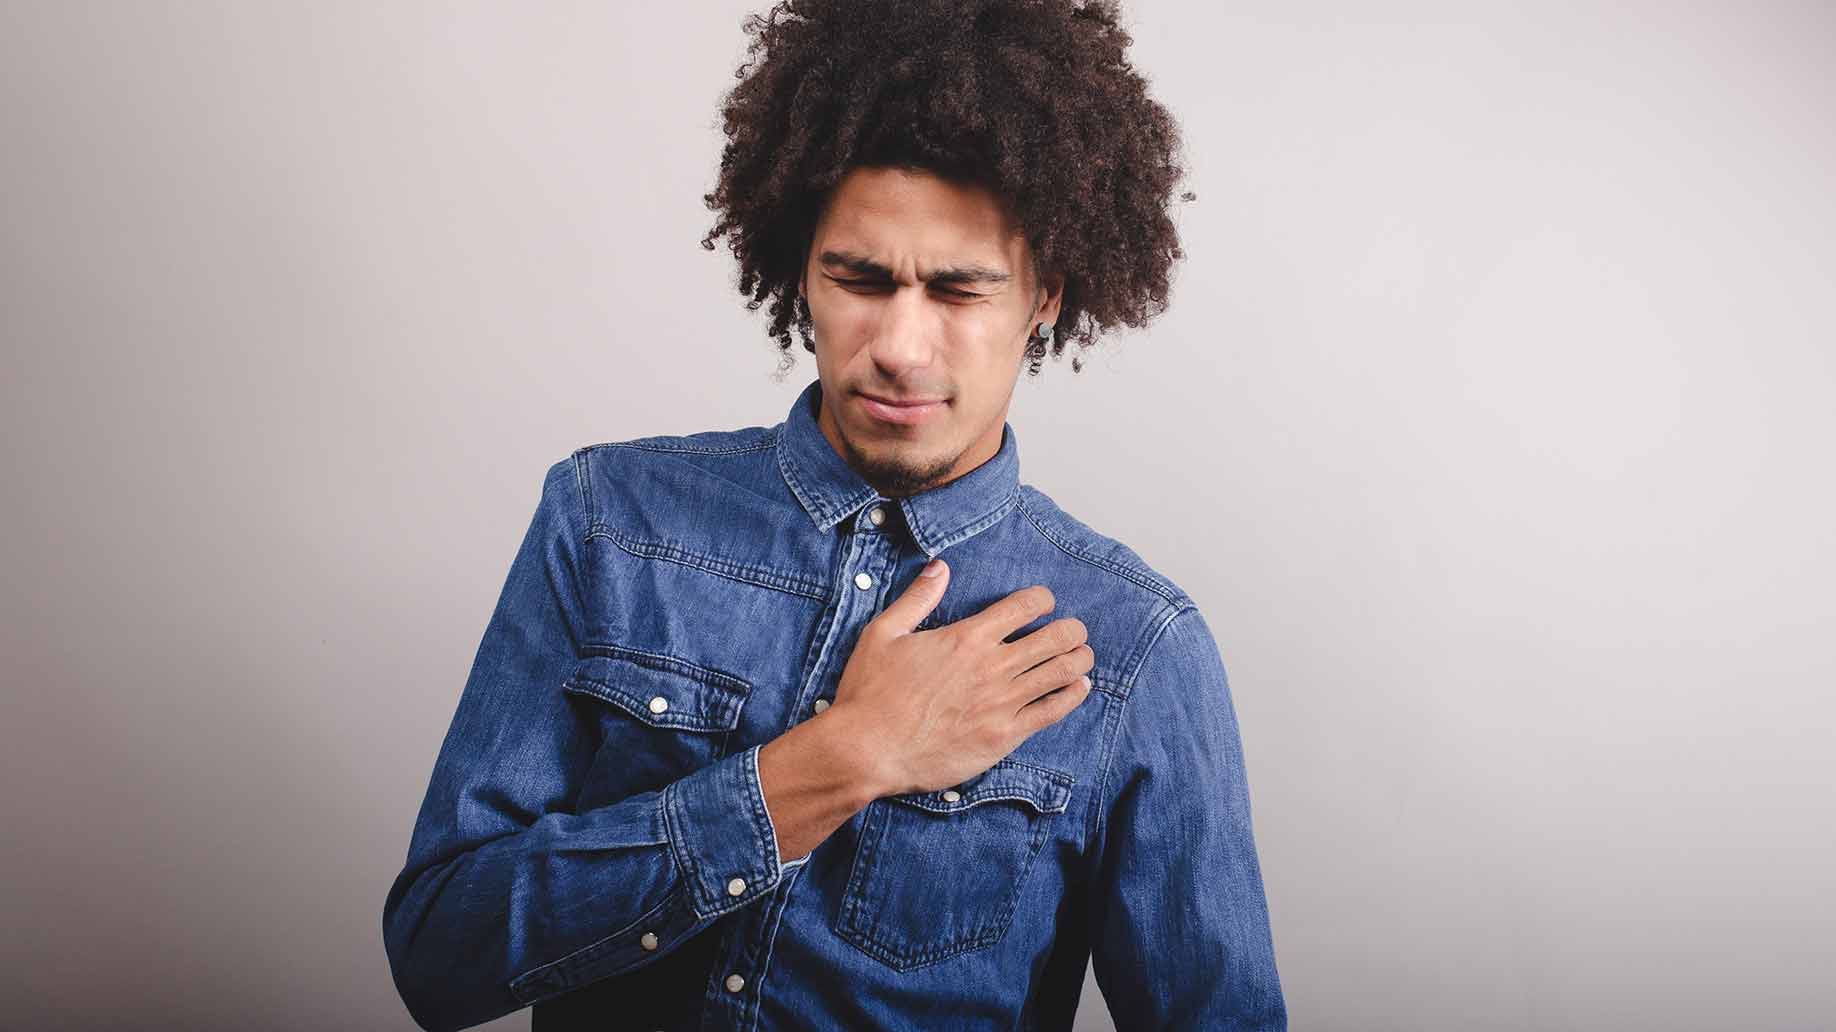 heartburn acid reflux gerd burning chest pain nausea